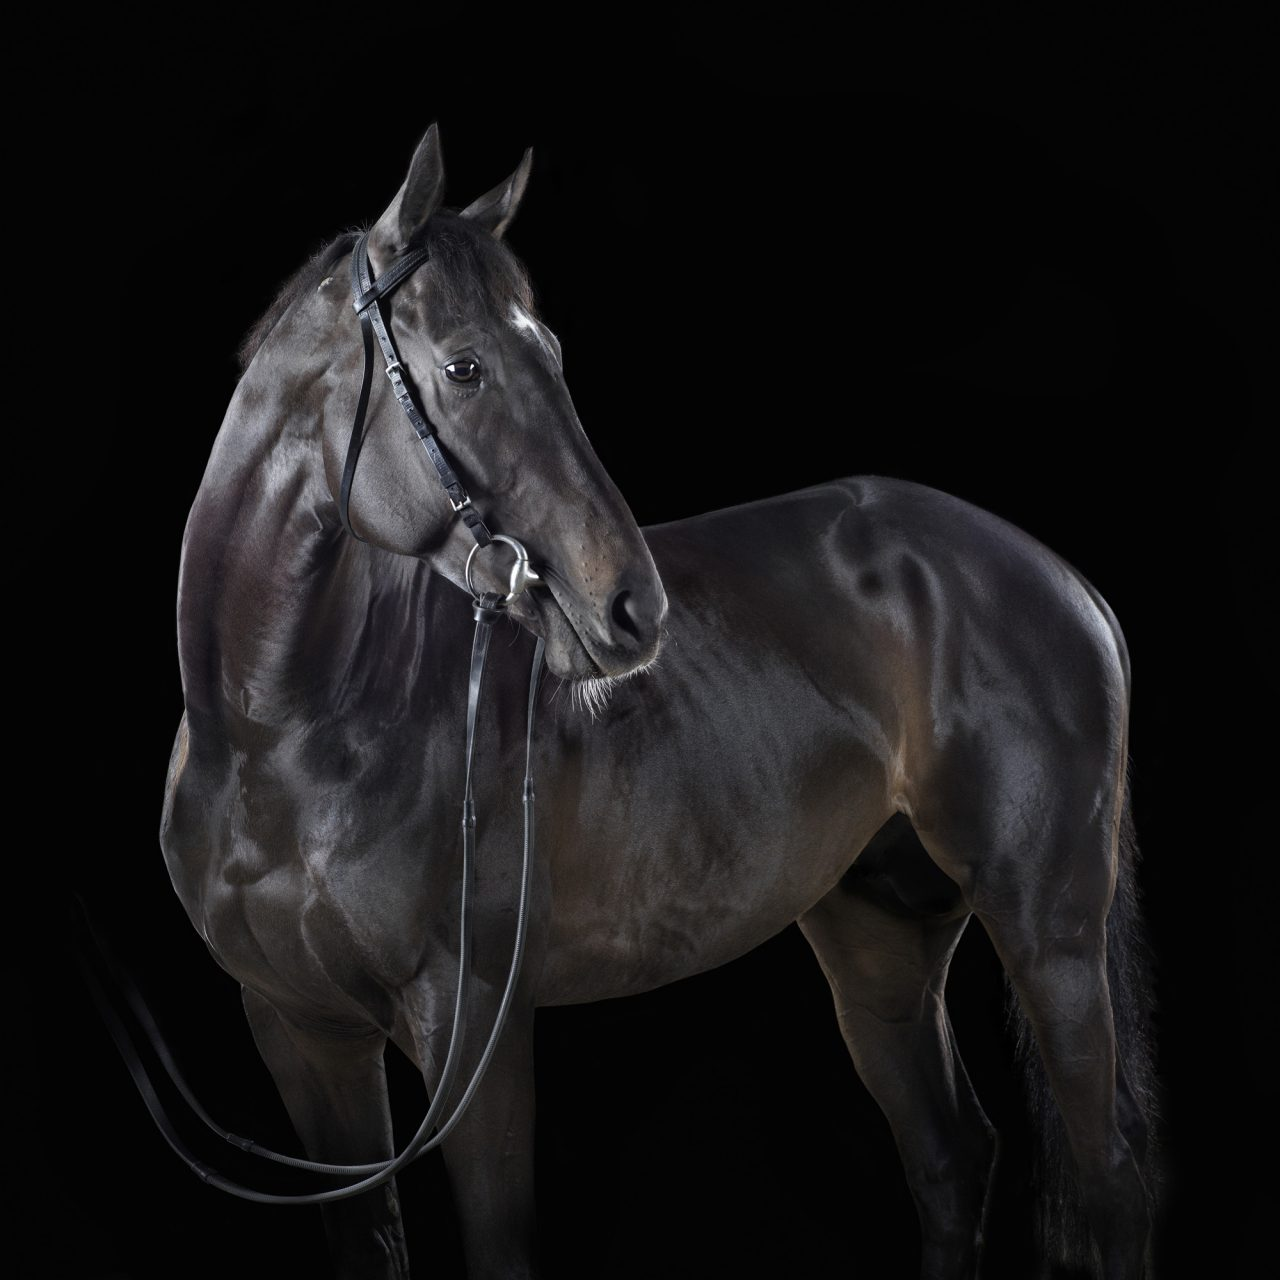 black thoroughbred horse posed in front of a black background